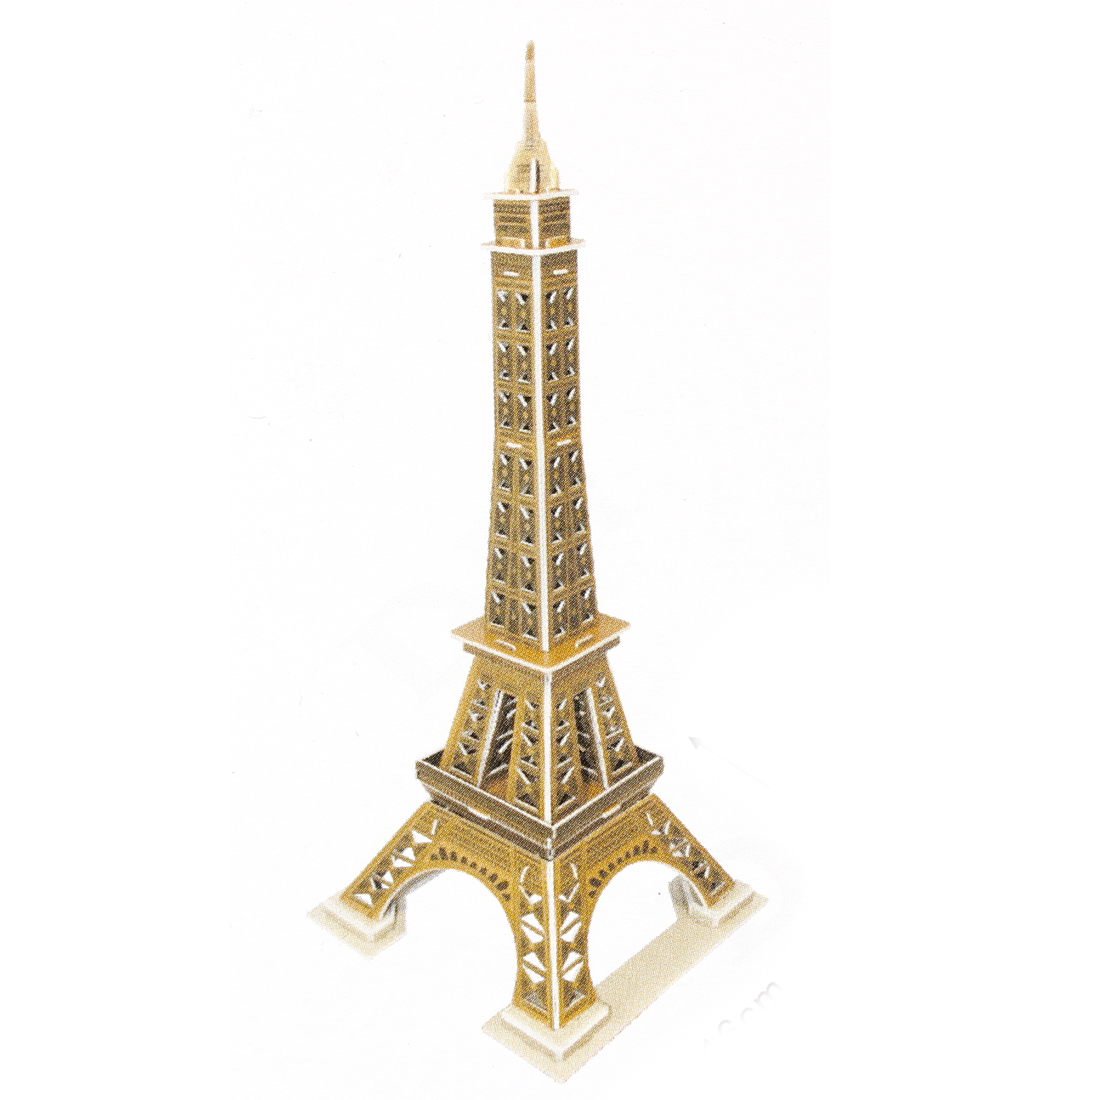 3D Foam Eiffel Tower Style Assemble Toy Gift for Child Light Brown